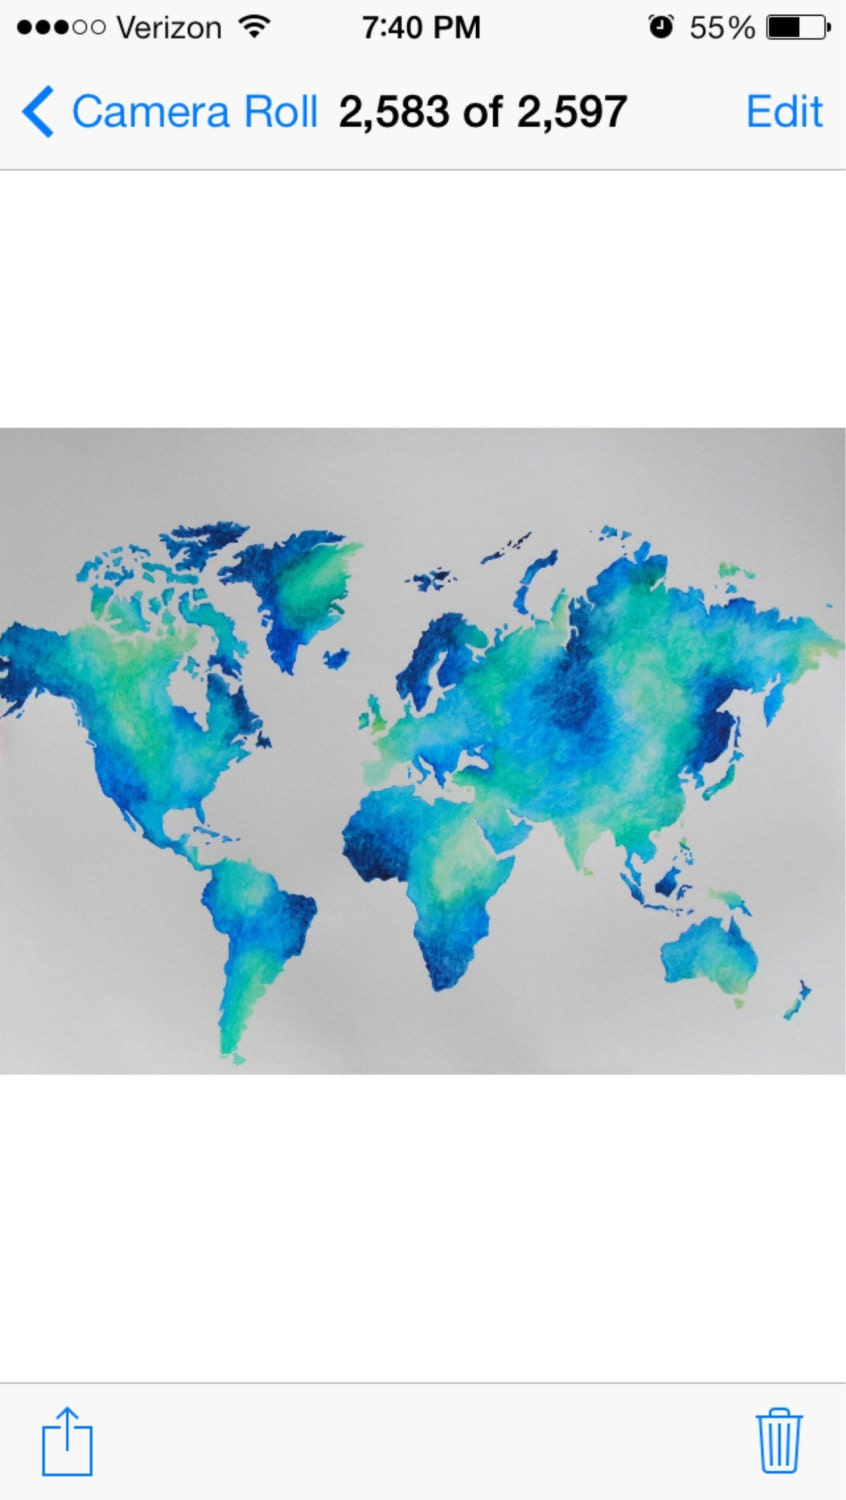 Watercolor world map etsy original watercolor world map art 18x24 by ericabibeeart gumiabroncs Images